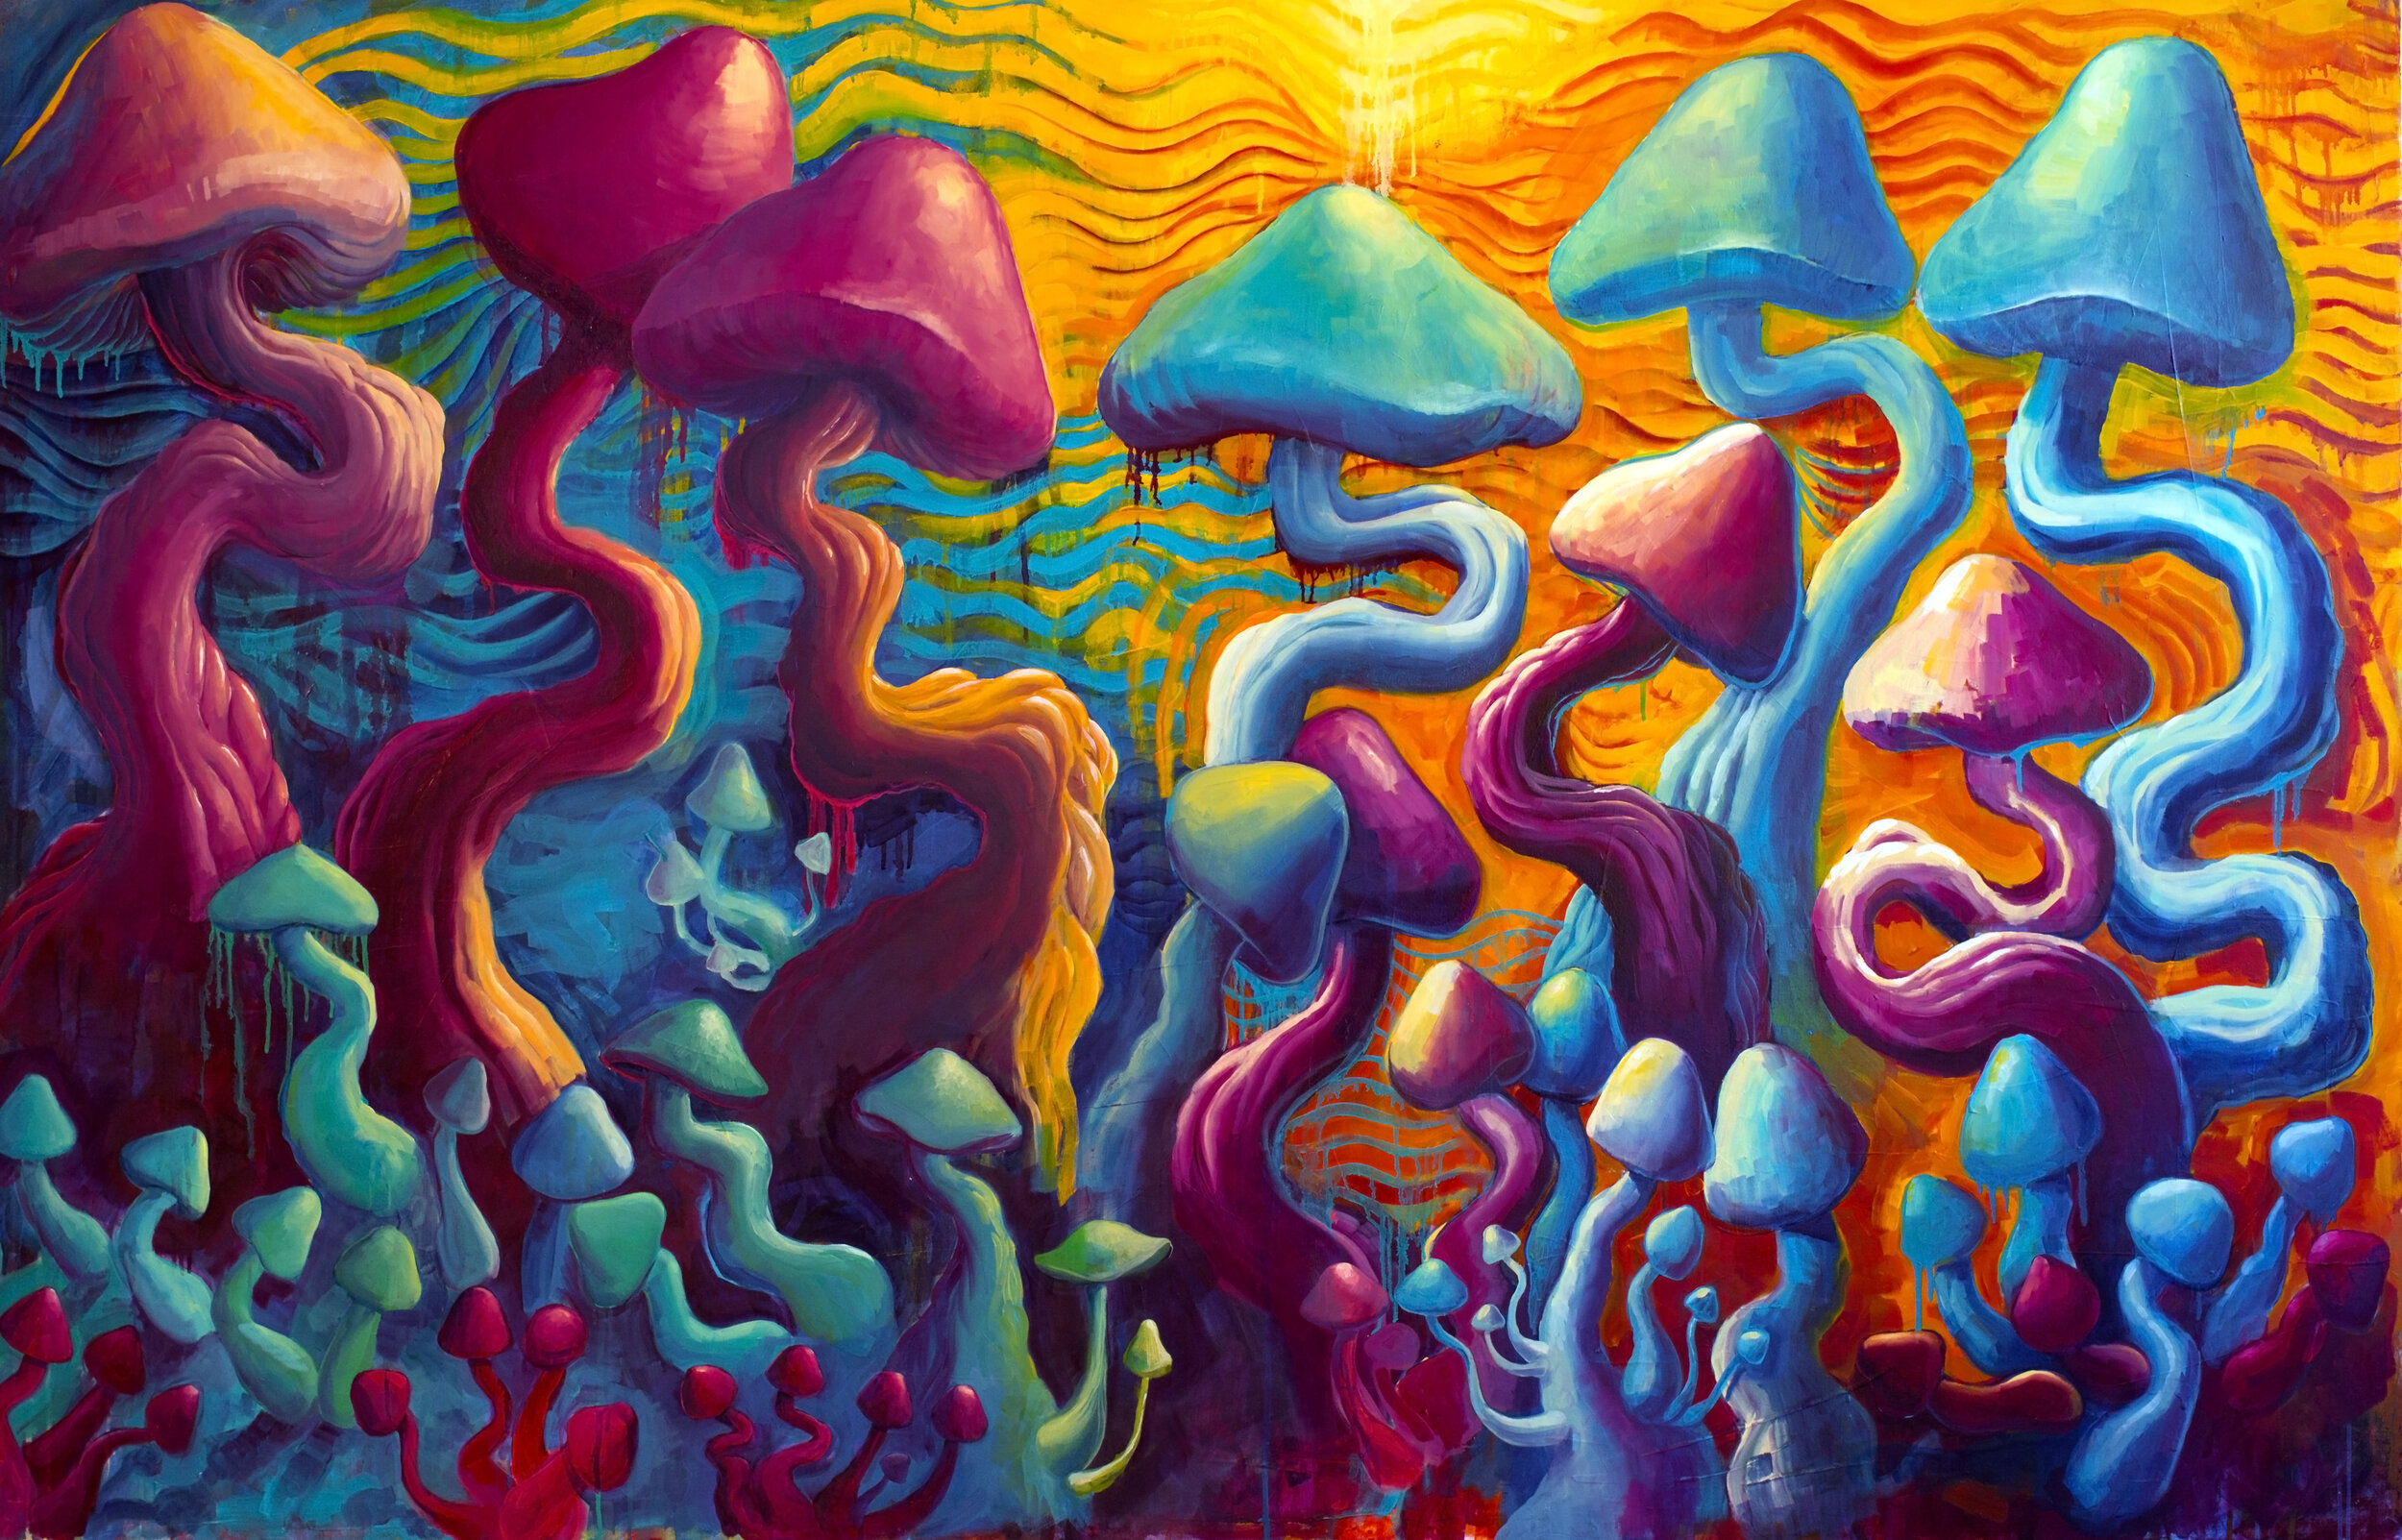 MUSHIES - 2013. Oil on canvas.48